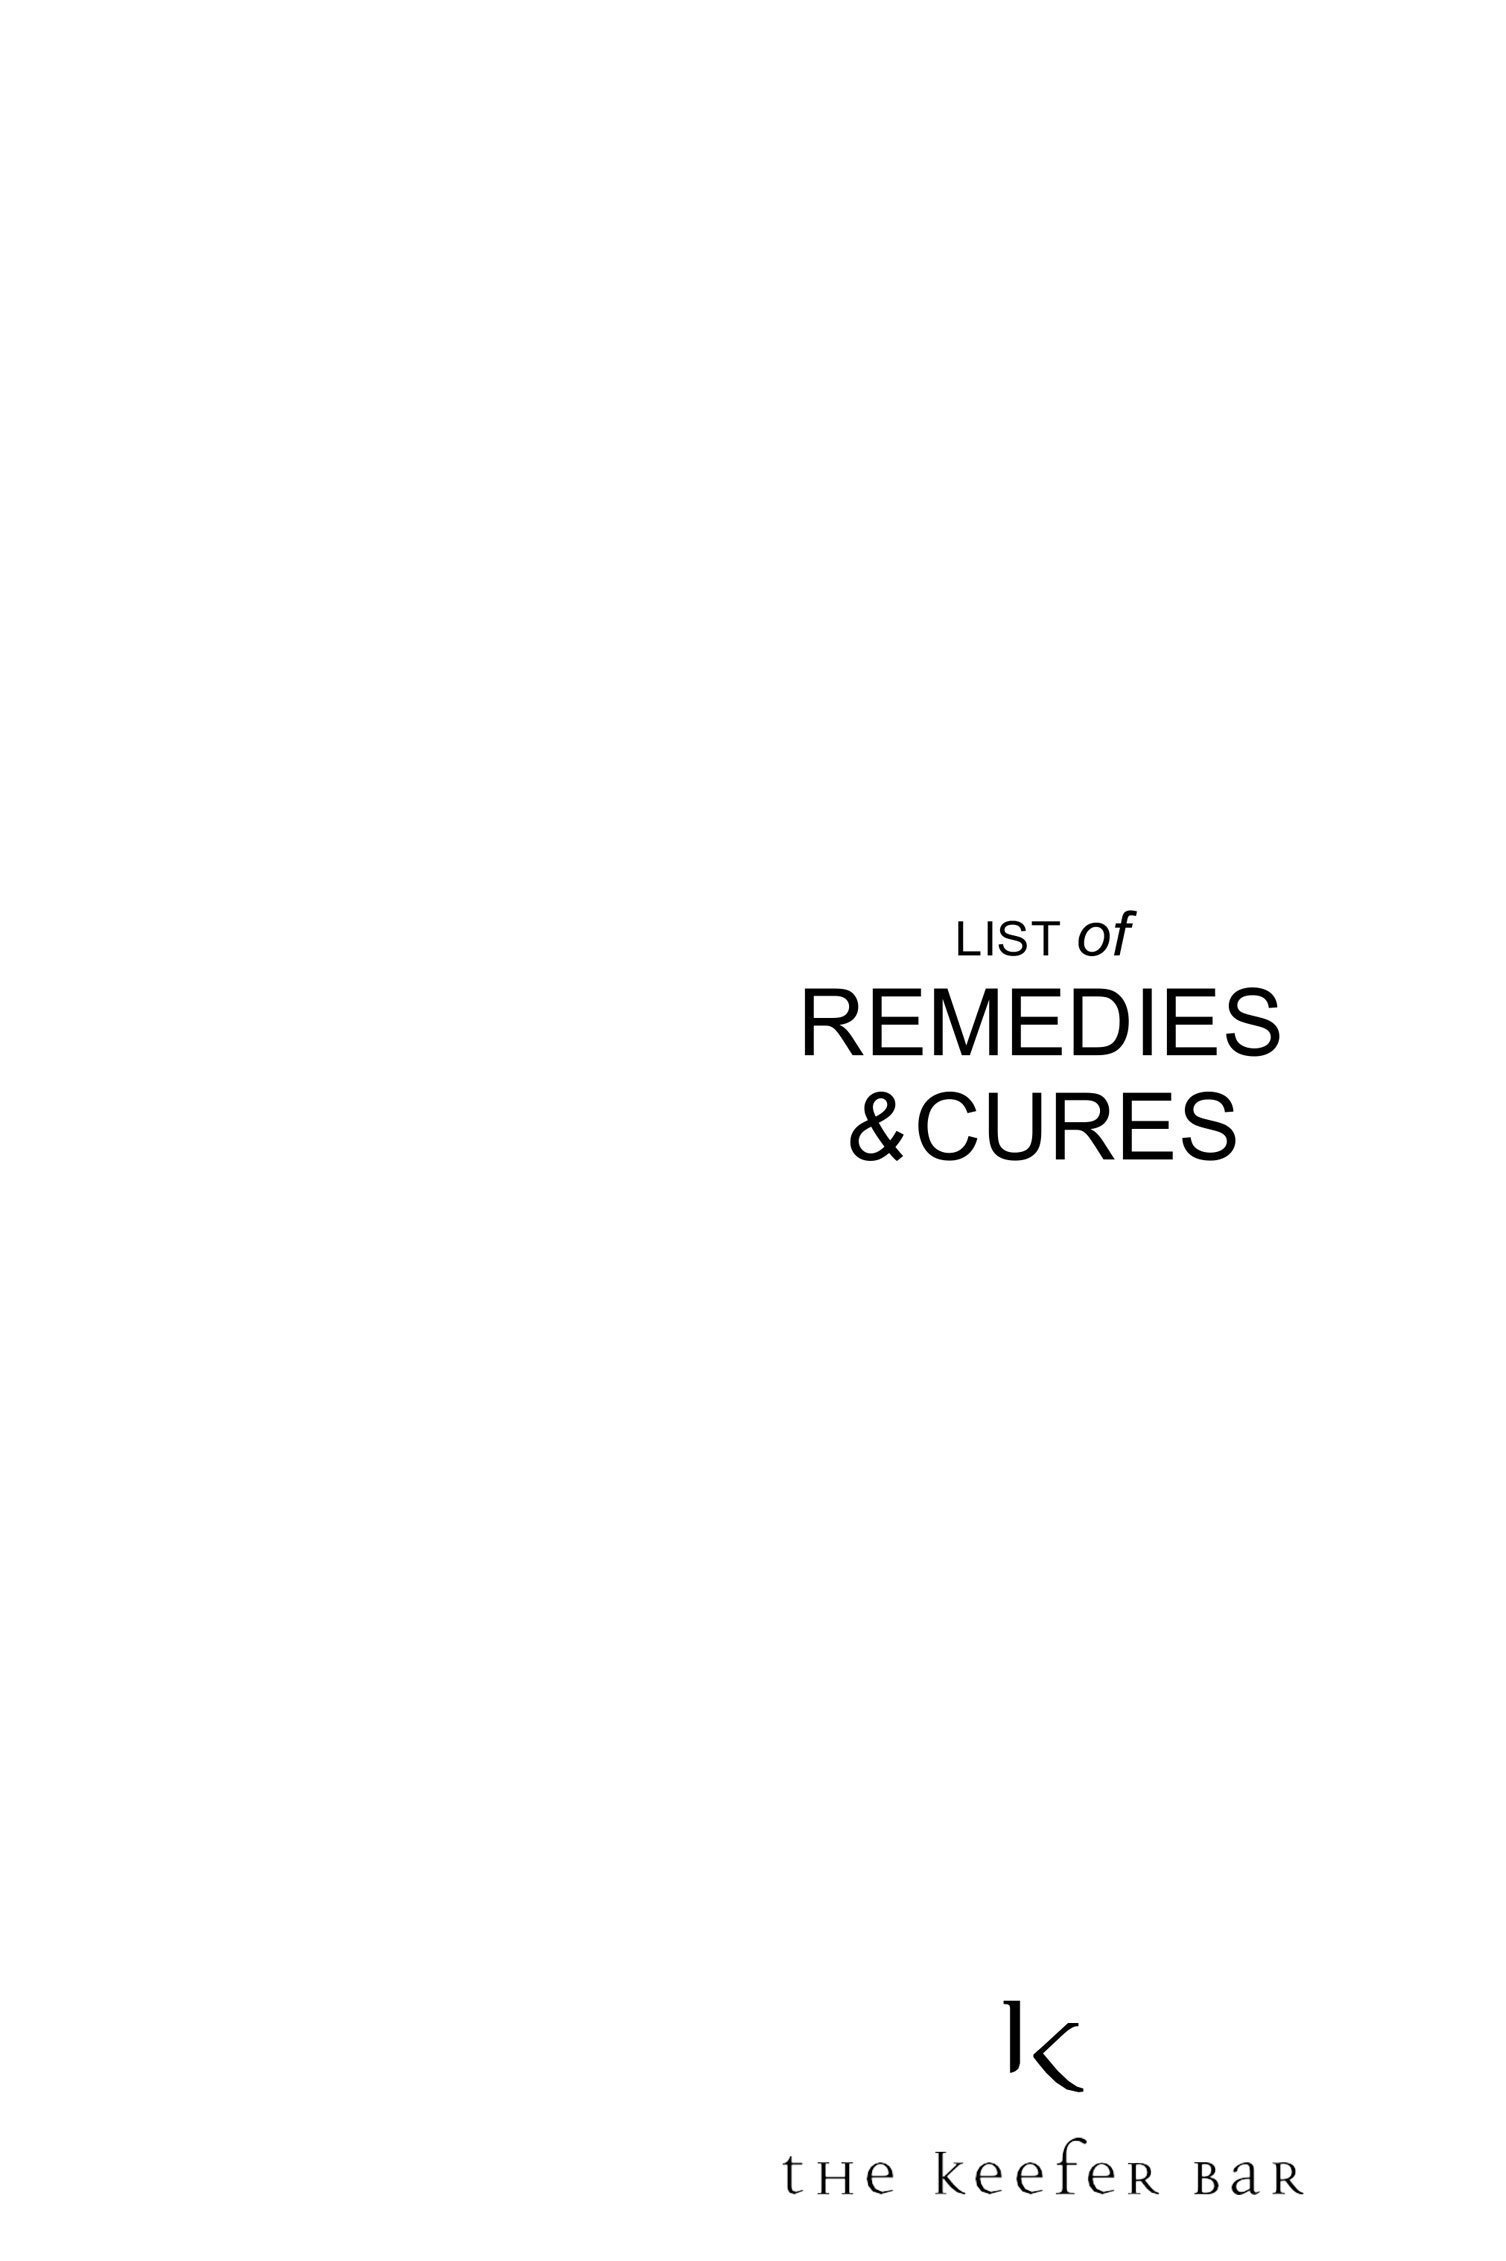 List of remedies & cures